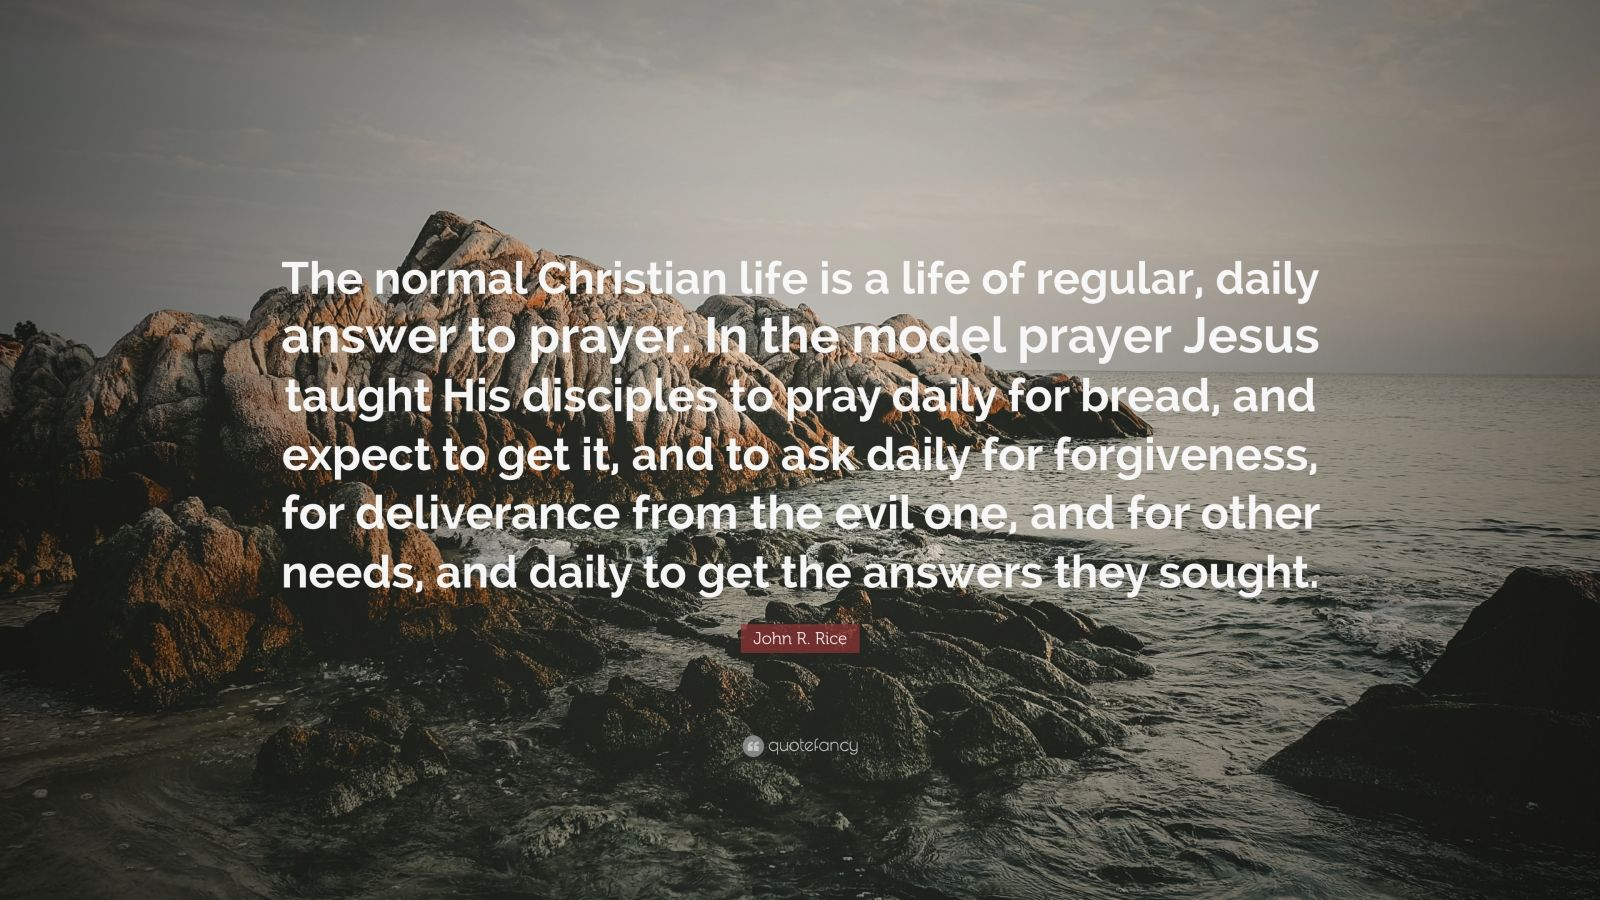 """John R. Rice Quote: """"The normal Christian life is a life of regular, daily answer to prayer. In the model prayer Jesus taught His disciples to pray daily for bread, and expect to get it, and to ask daily for forgiveness, for deliverance from the evil one, and for other needs, and daily to get the answers they sought."""""""